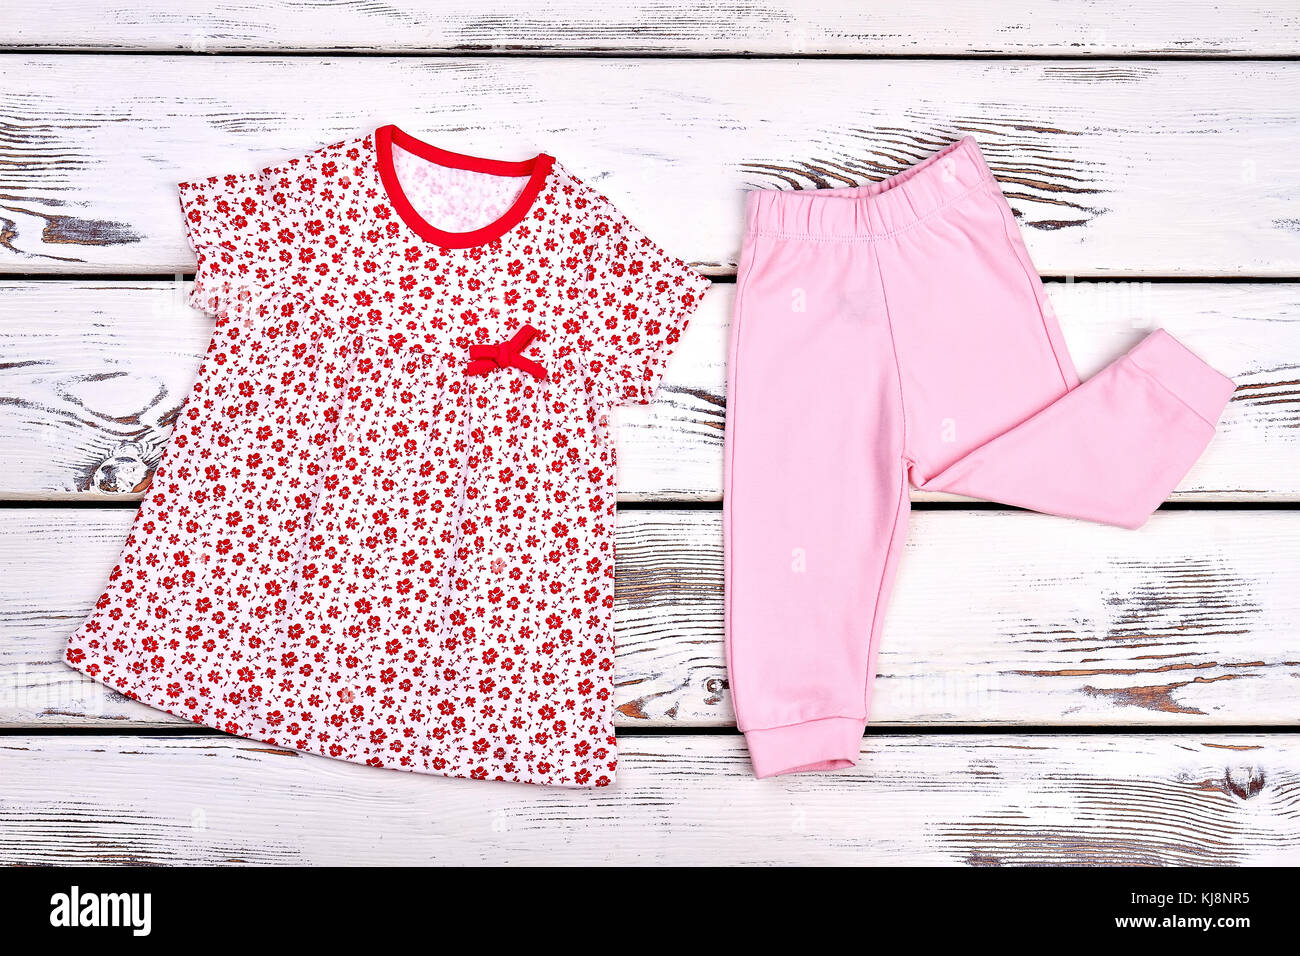 9ad62f832c9 Baby-girl cotton top and trousers. Toddler girl casual patterned ...